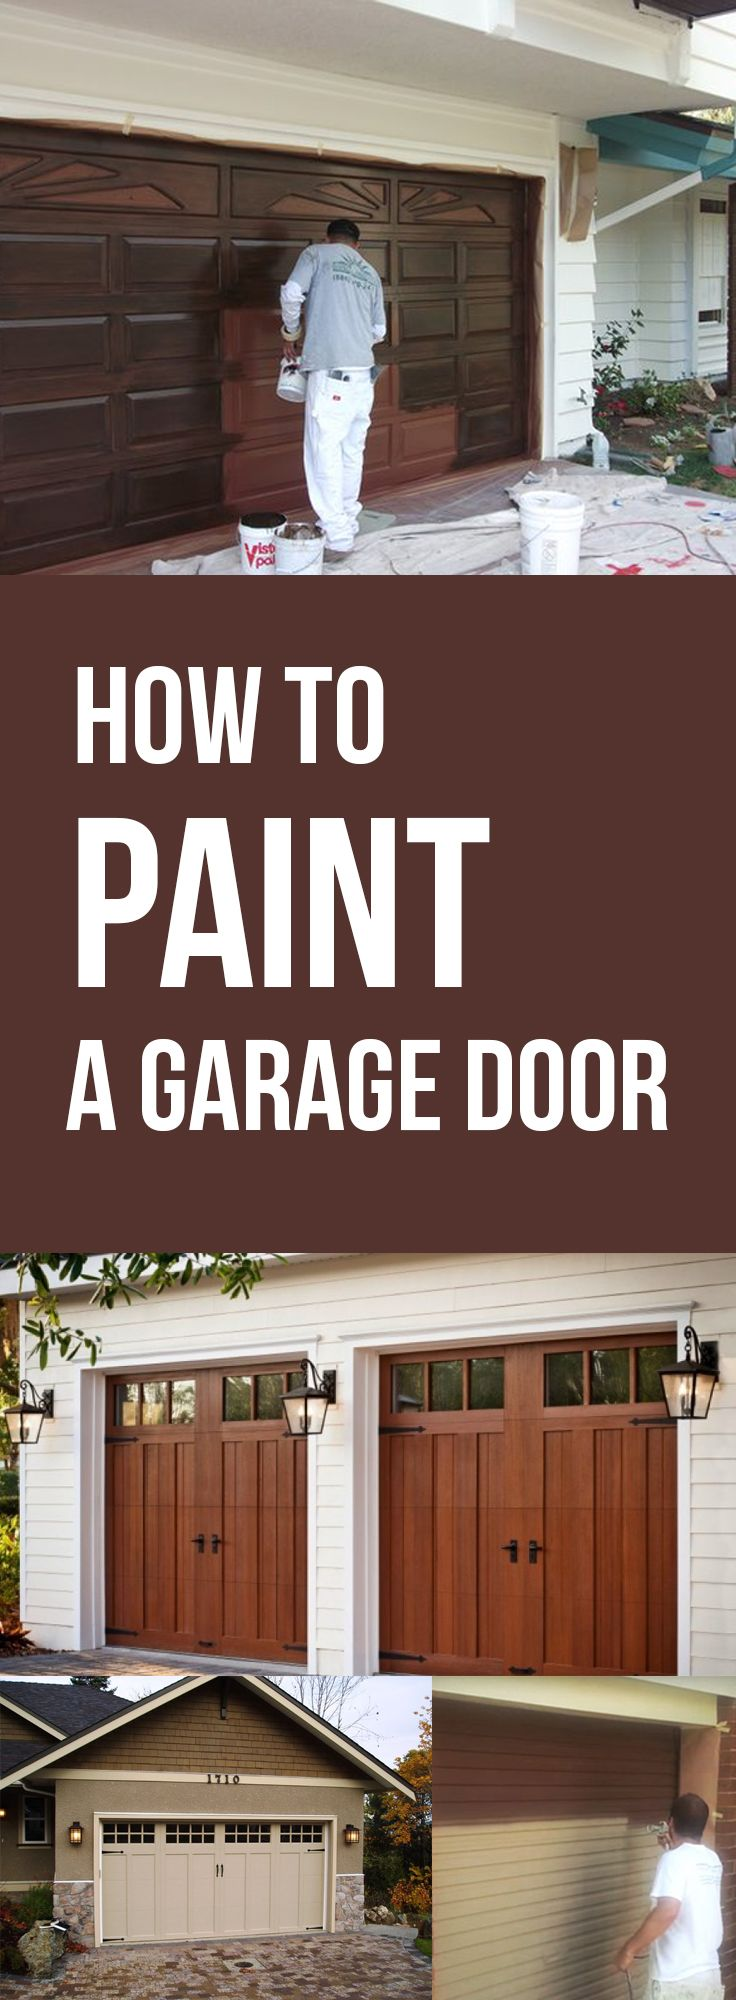 ideas painting tips how to paint exterior paint paint colors forward. Black Bedroom Furniture Sets. Home Design Ideas